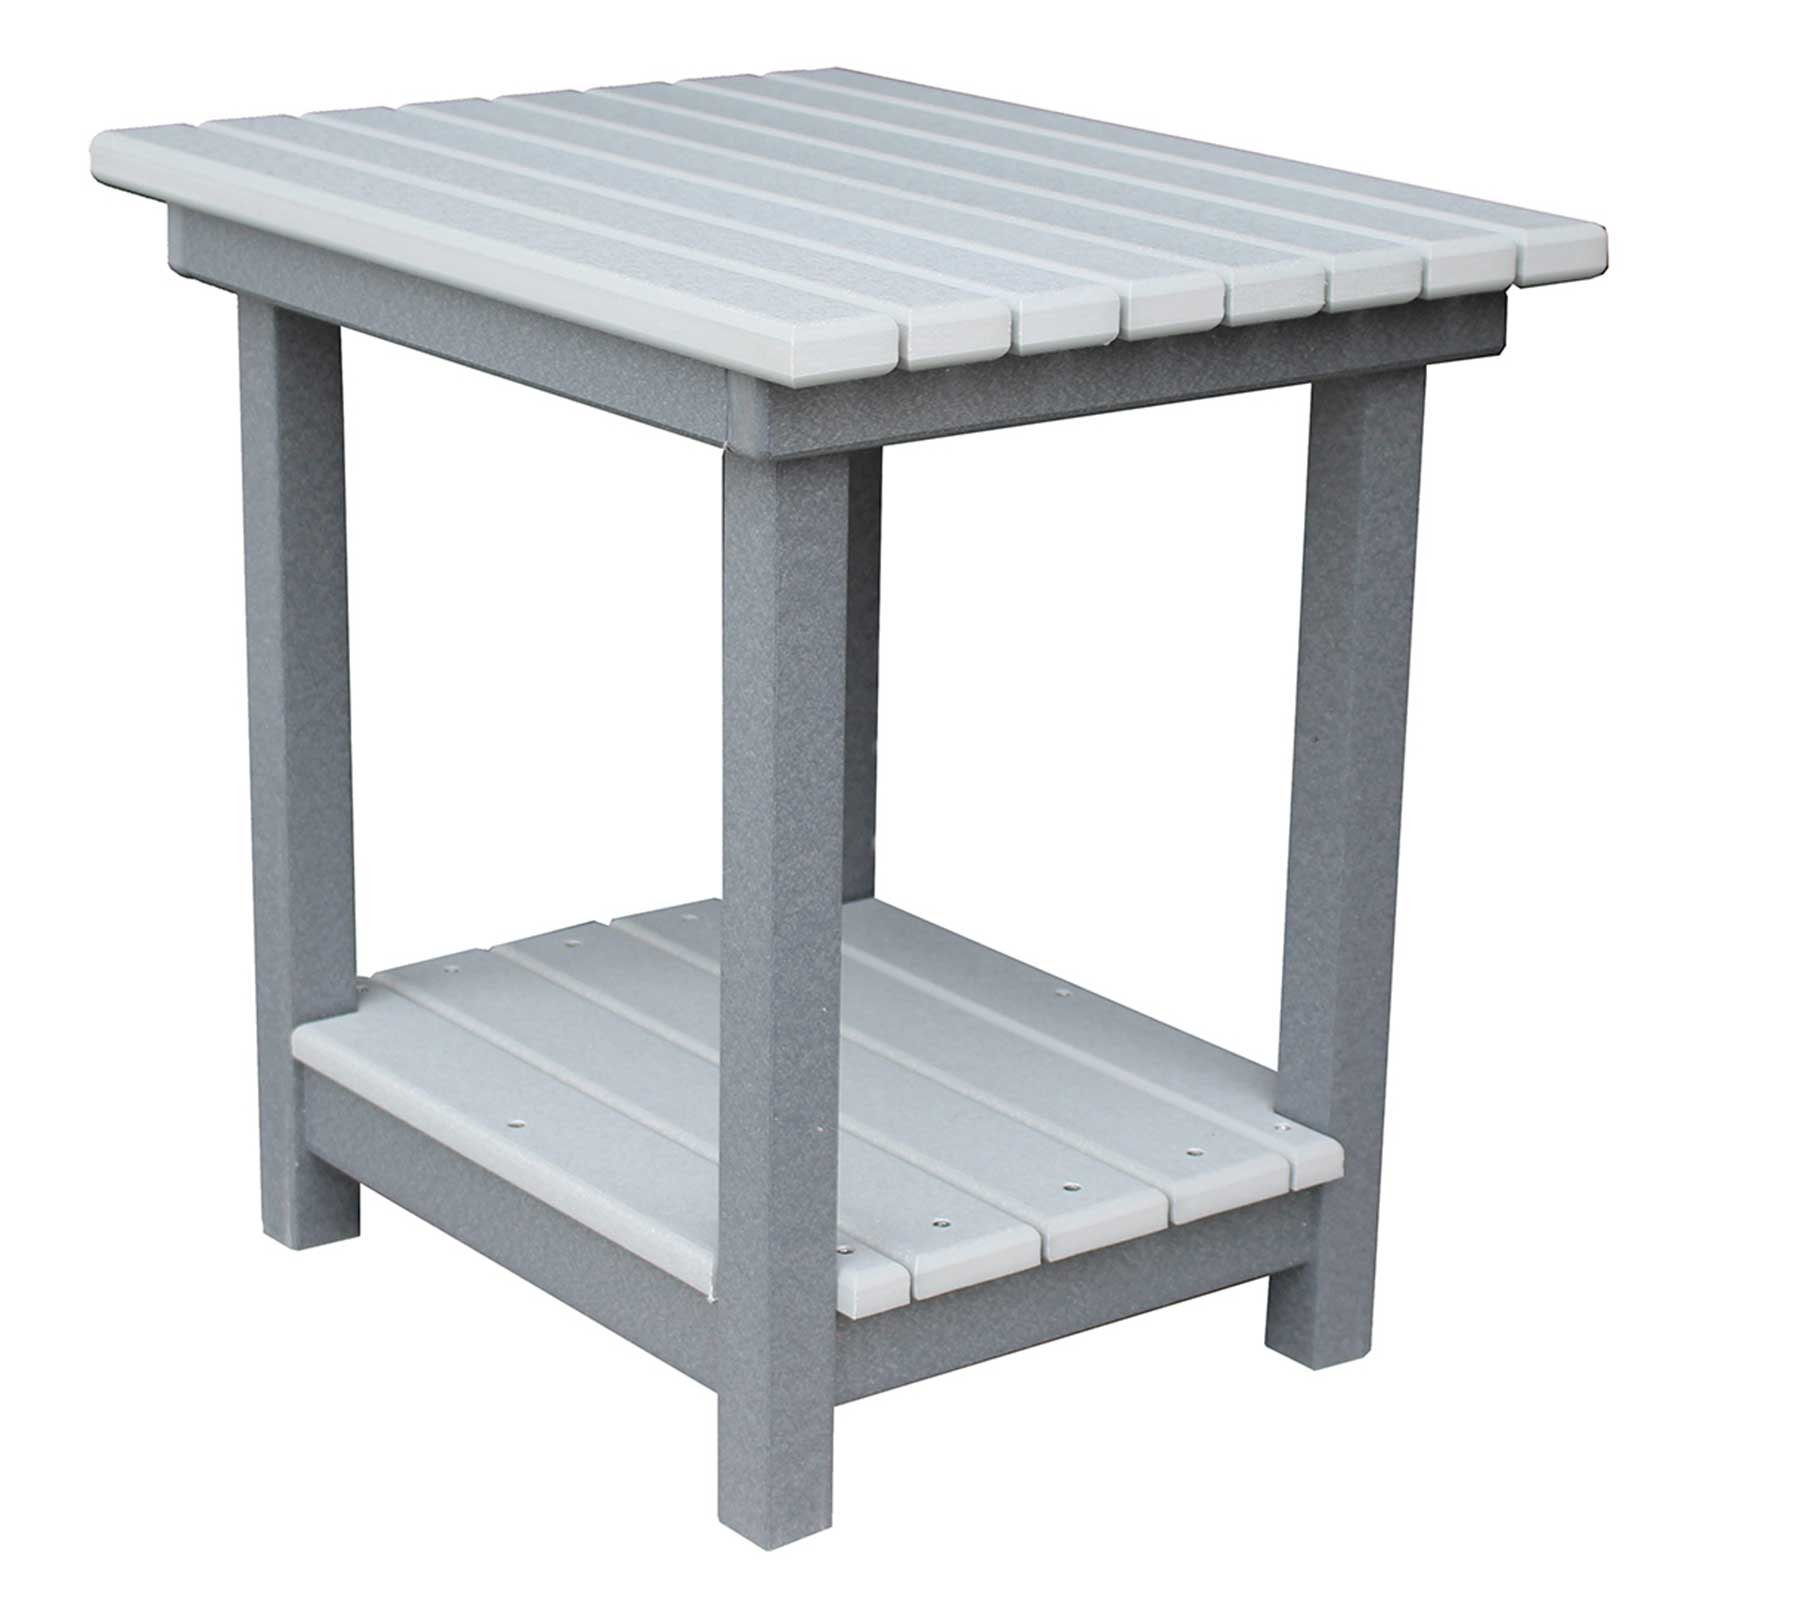 The Deluxe End Table From Signature Fine Furnishings